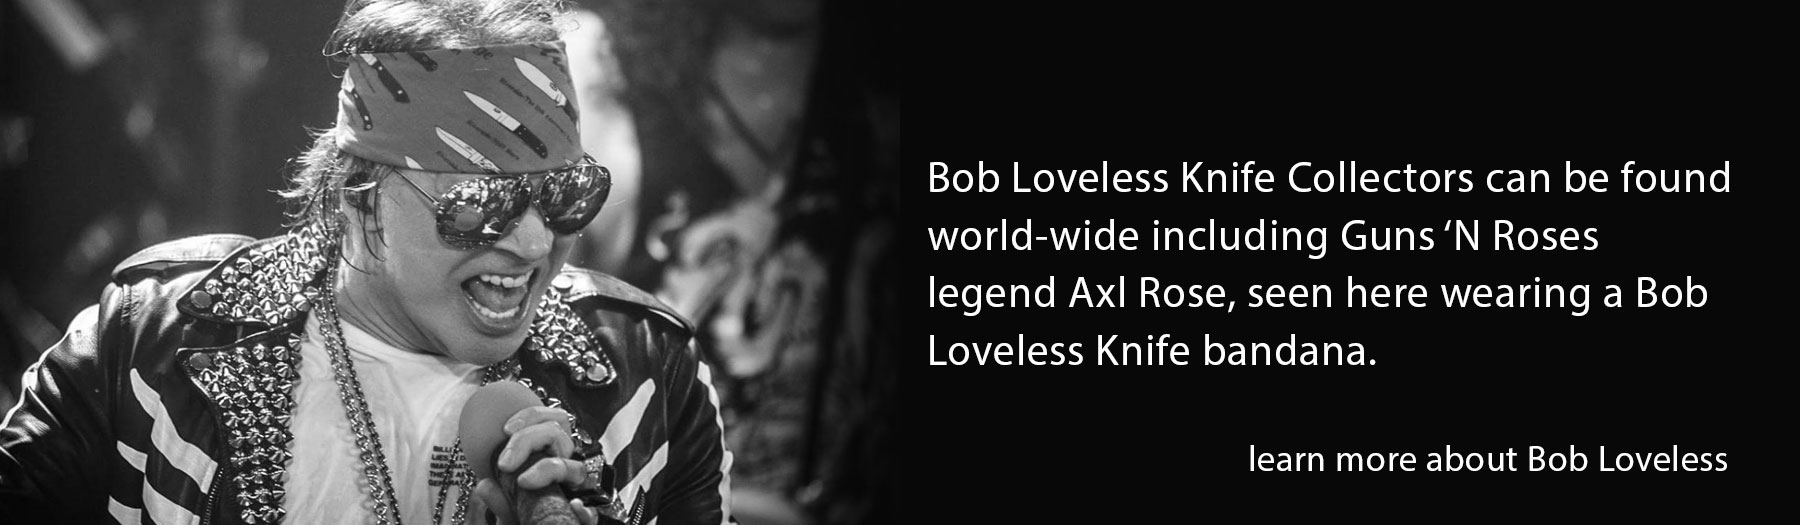 Axl Rose Bob Loveless KNIFE COLLECTOR